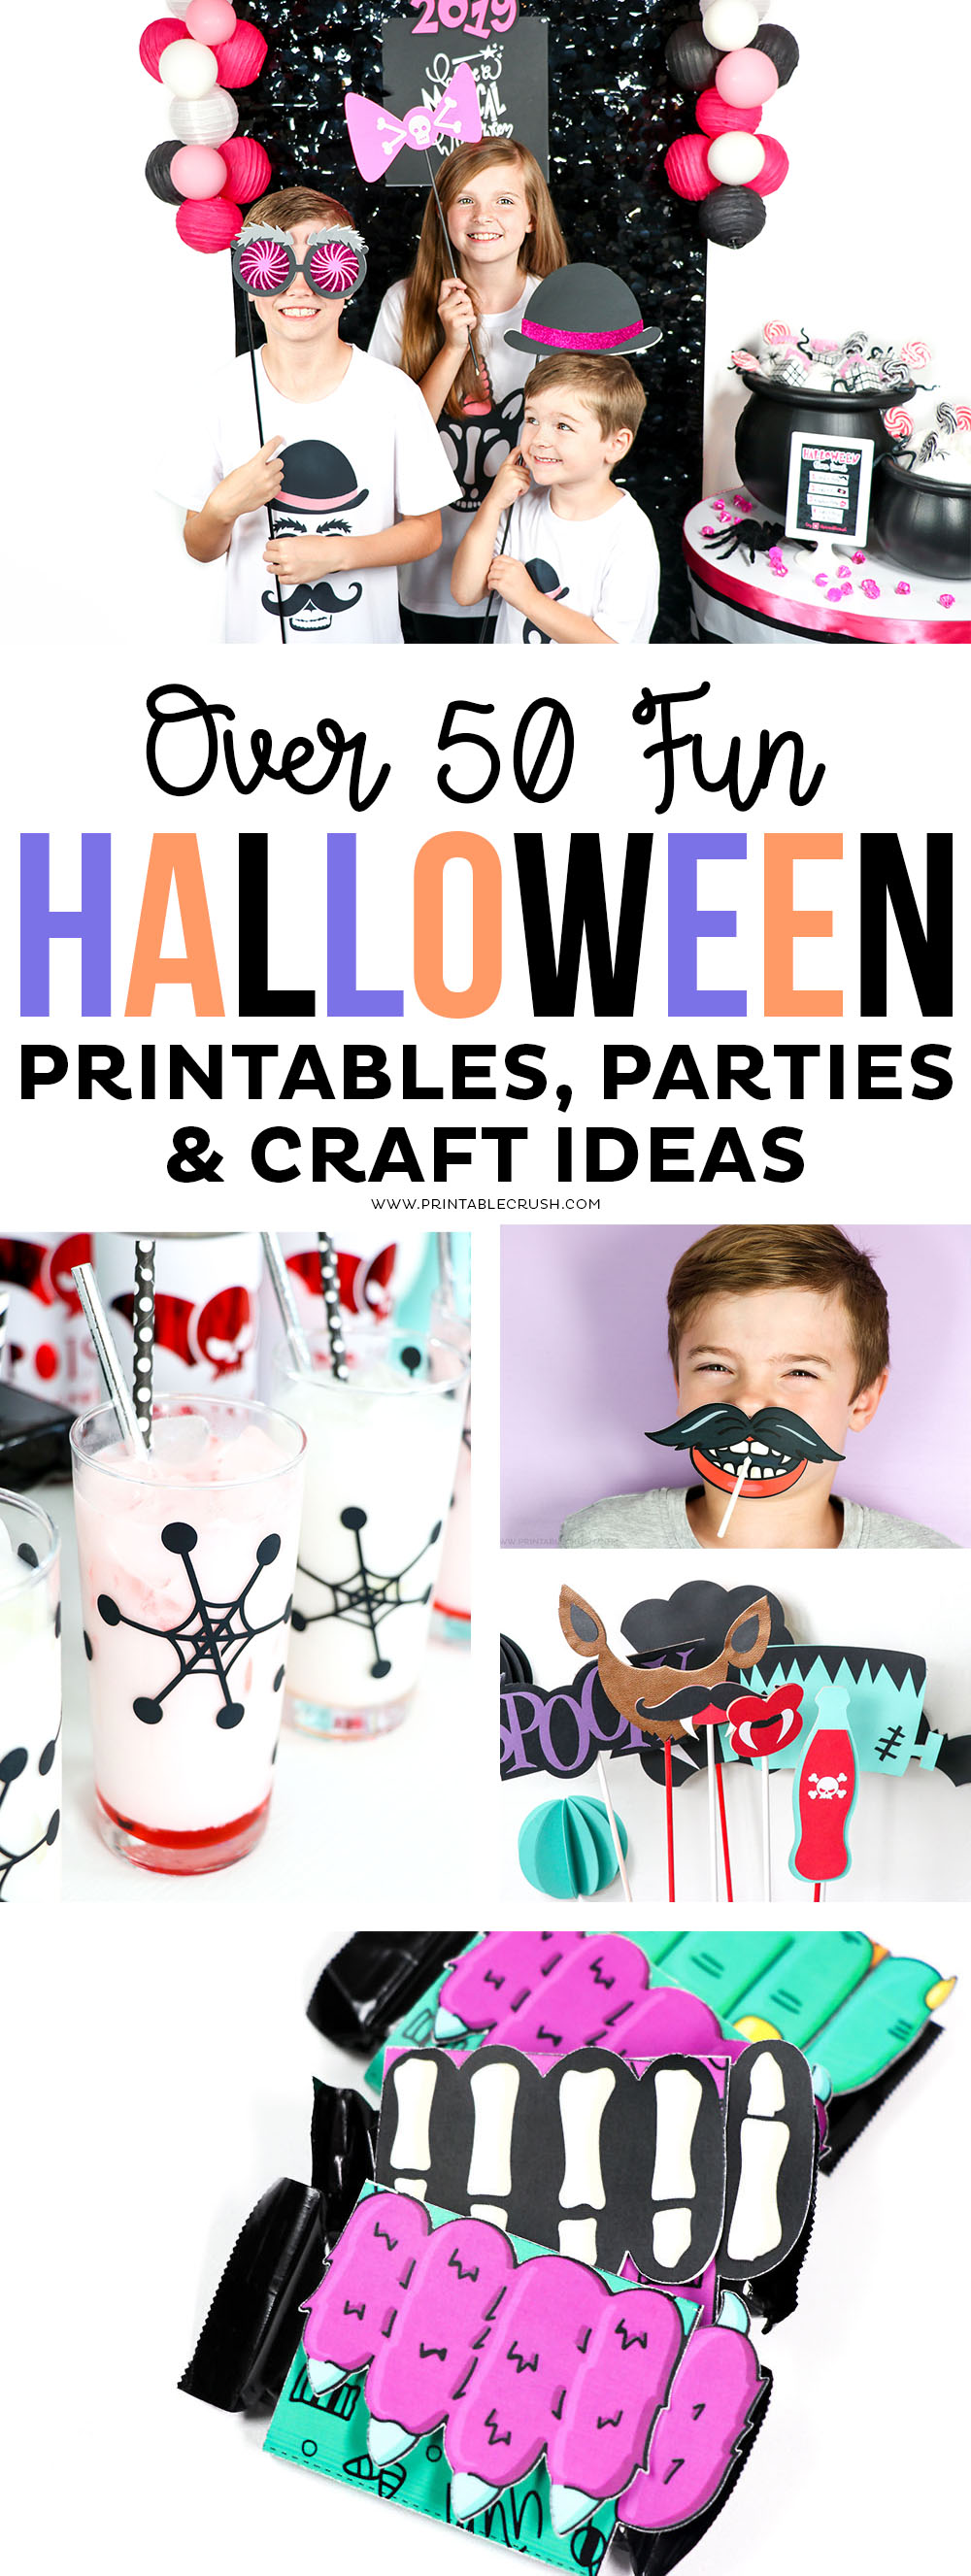 Over 50 Fun Halloween Printables, Crafts, and Party Ideas #printablecrush #halloweenprintables #halloweencrafts #halloweenideas #halloweenparties #diyhalloweencraftideas #halloweencrafts #craftsforkids #halloween via @printablecrush